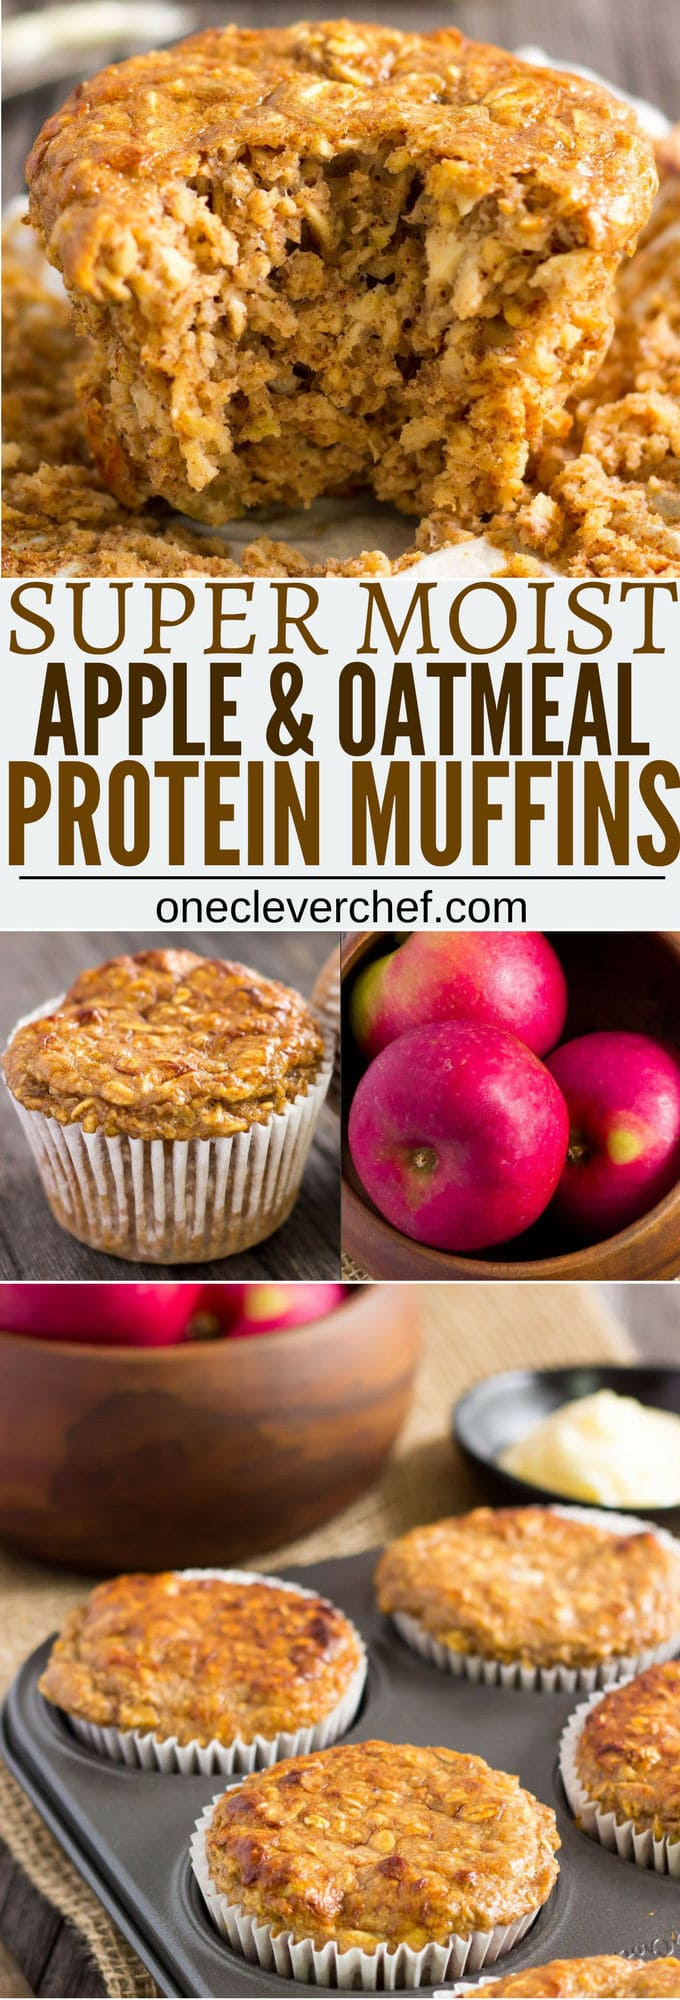 I love these super moist and tender apple protein muffins. These yummy little ones are protein-packed, 100% healthy, naturally sweetened with maple syrup (could be replaced with honey) and extra easy to make. They are the perfect on-the-go clean eating breakfast or post-workout lunch. These are also gluten-free, dairy-free and can be made vegan by replacing the eggs with flax eggs or applesauce.  www.onecleverchef.com